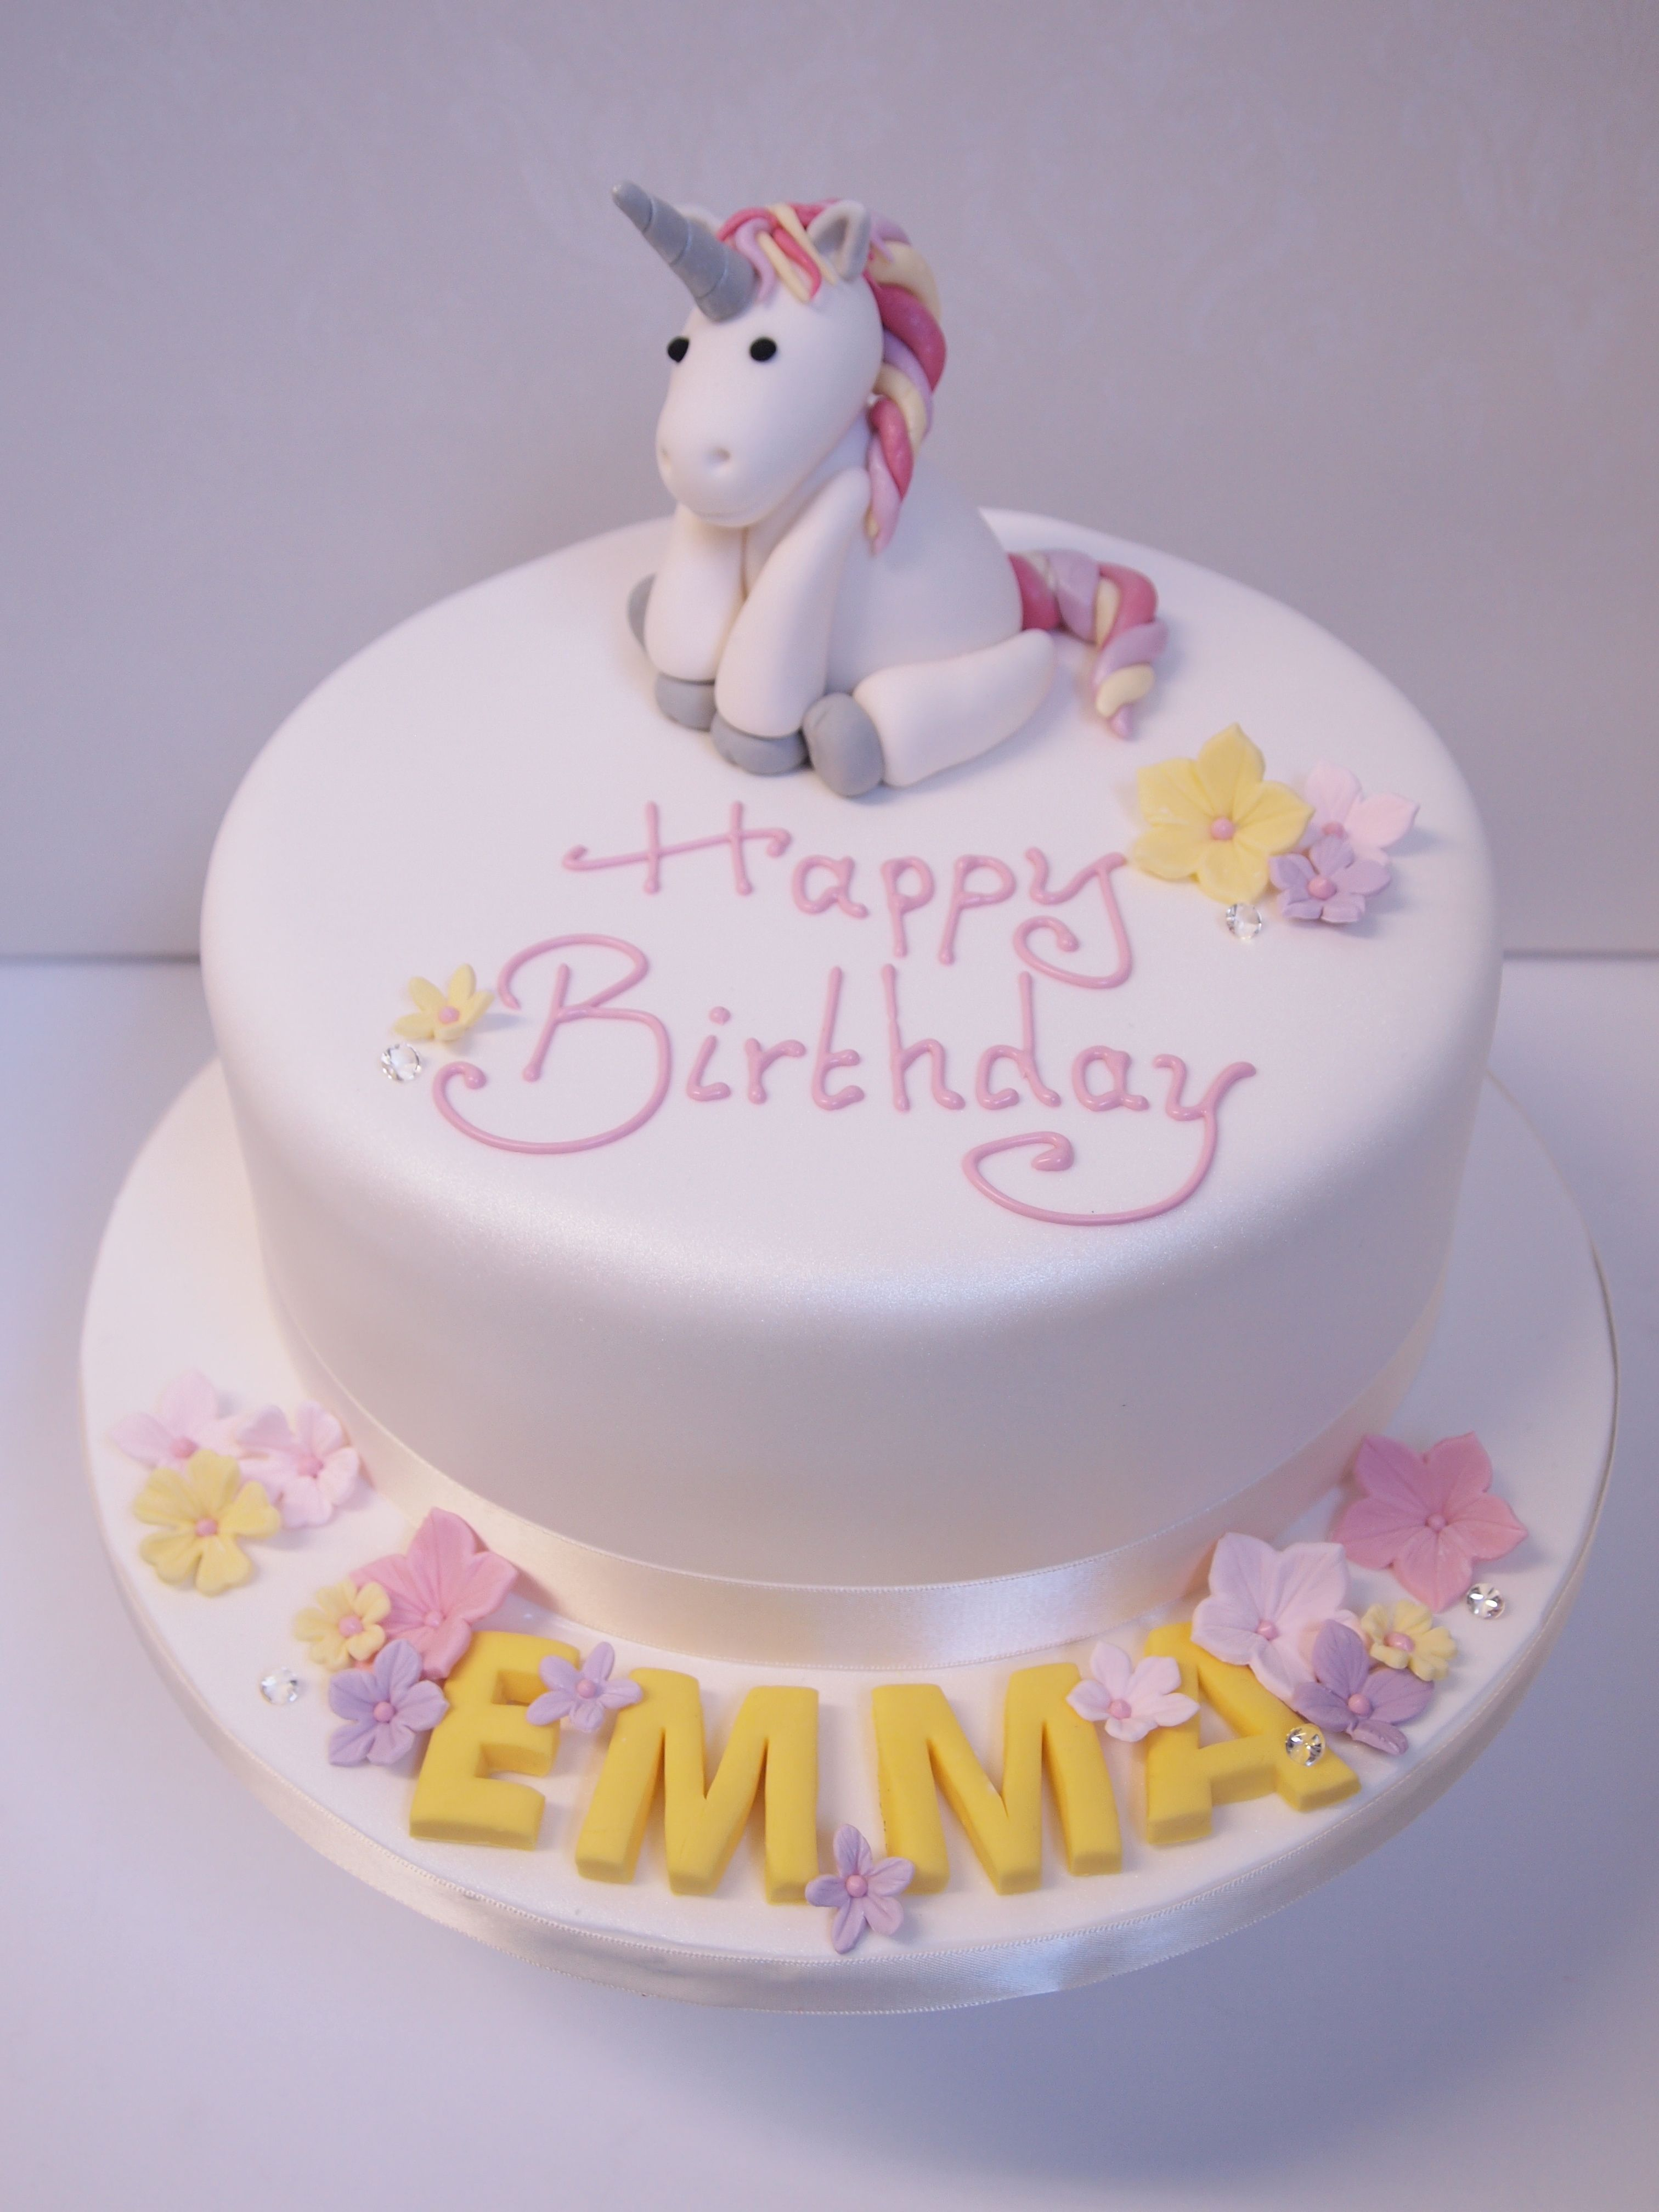 Pastel Birthday Cake with a Handmade Sugarpaste Model of a